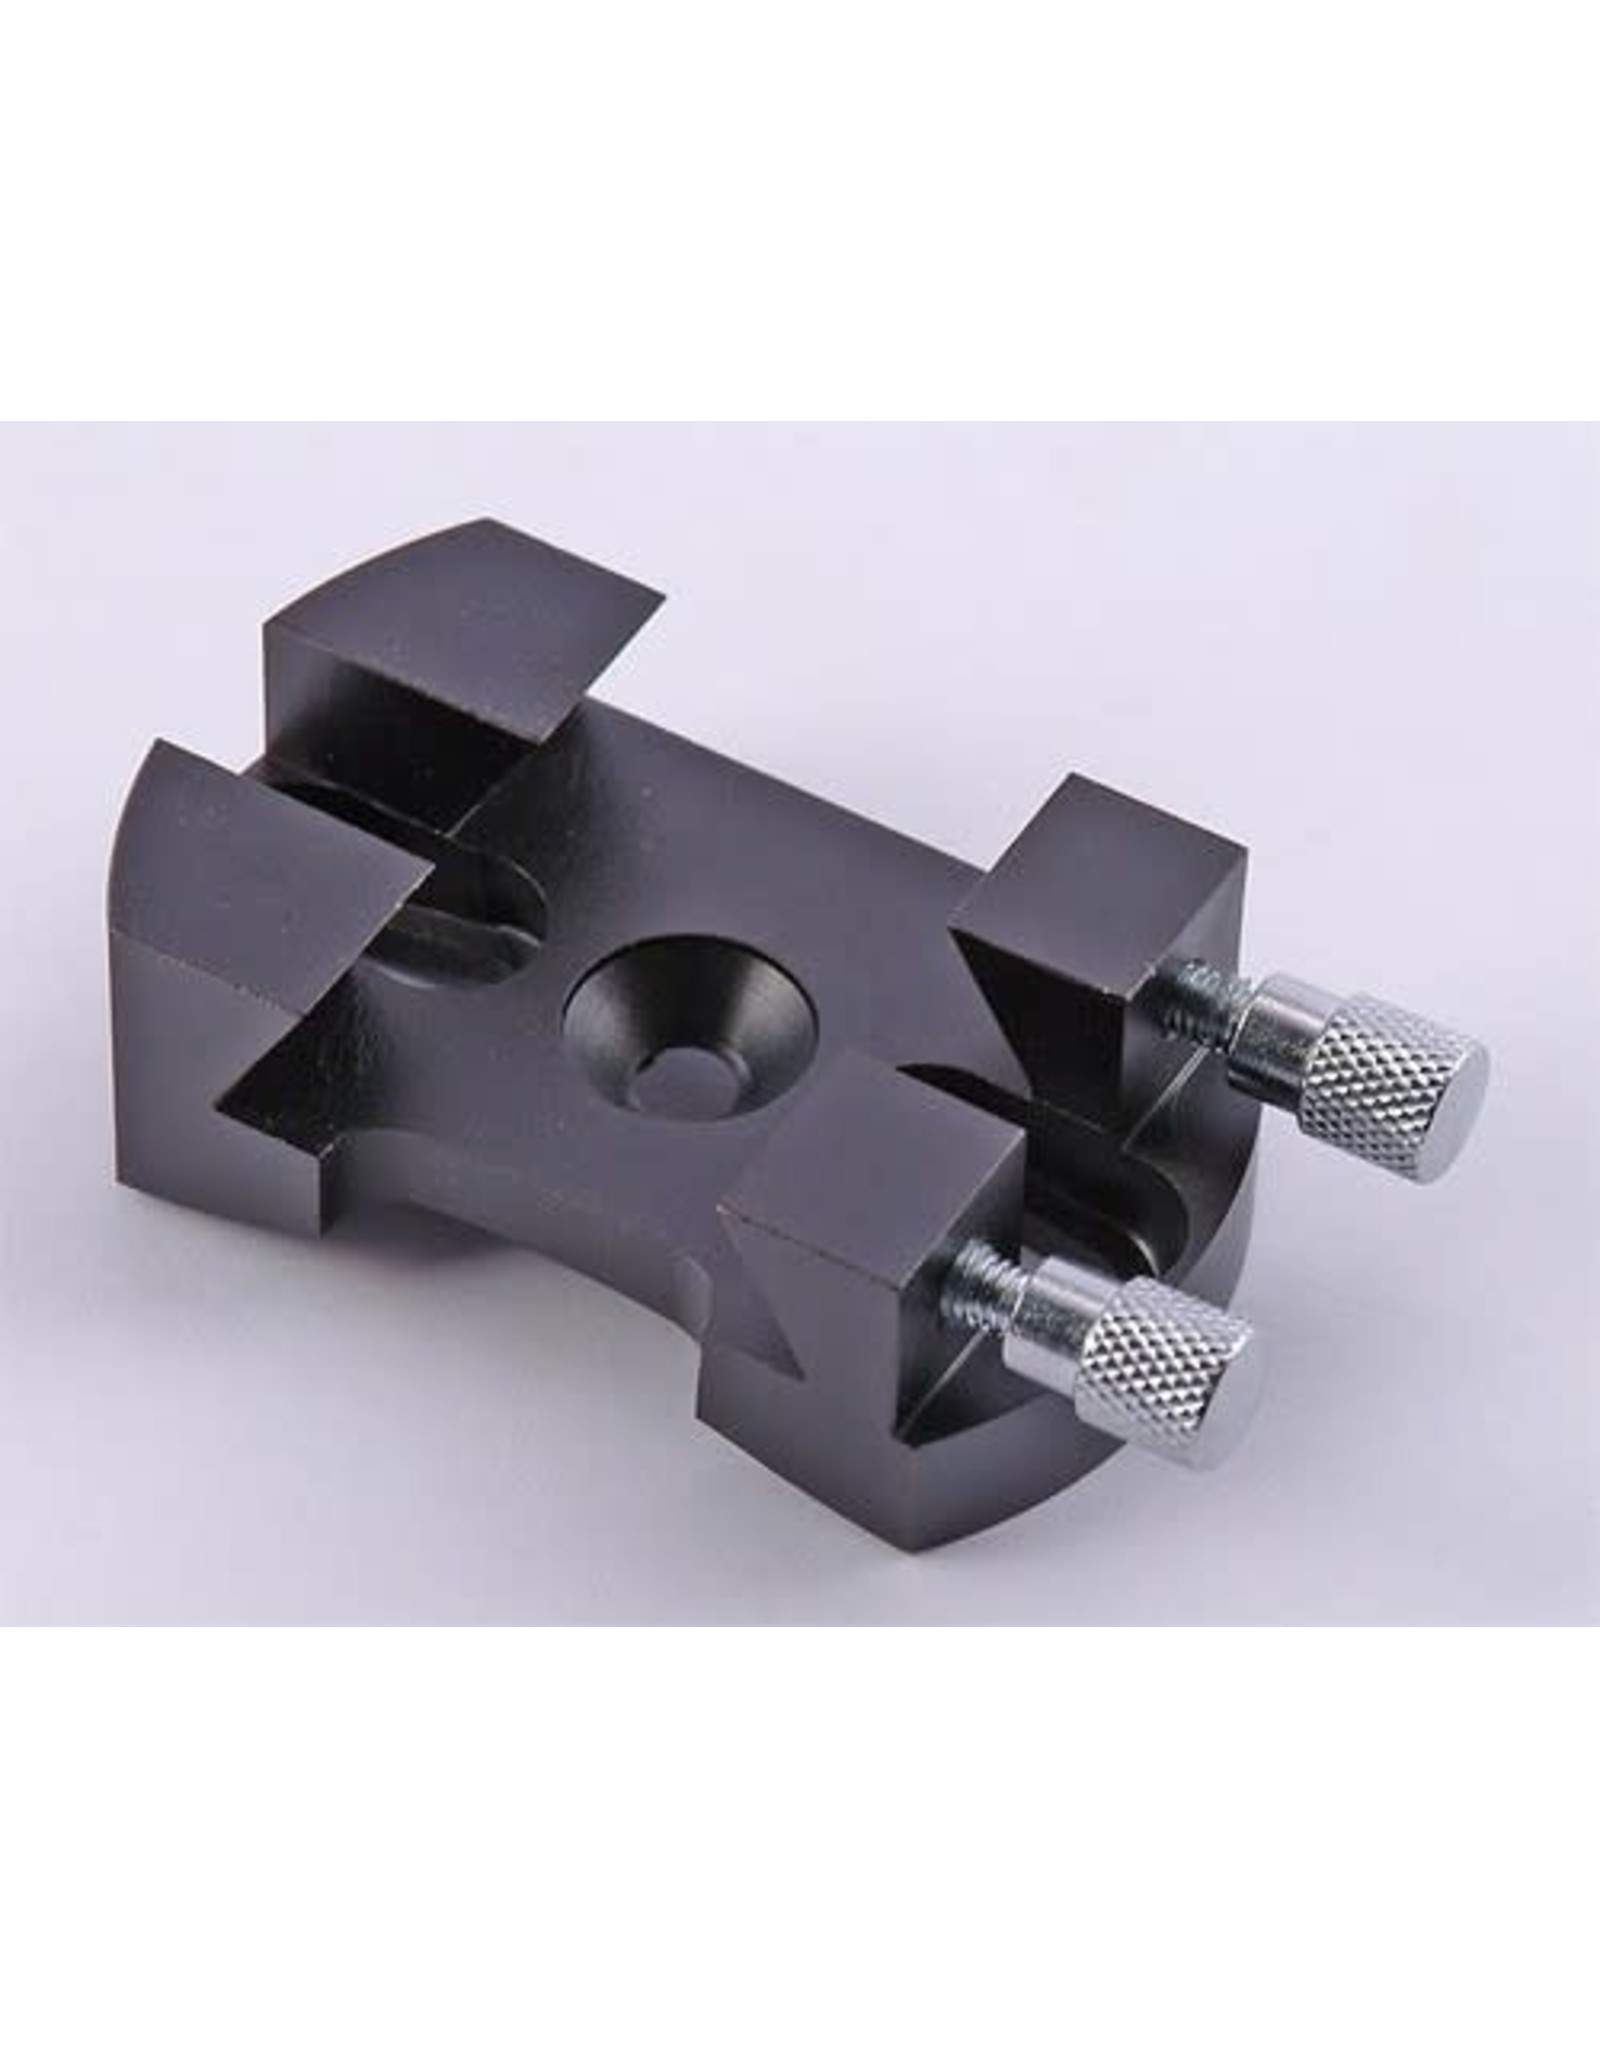 Baader Planetarium Baader Standard Dovetail Finder Base # DOVE-B